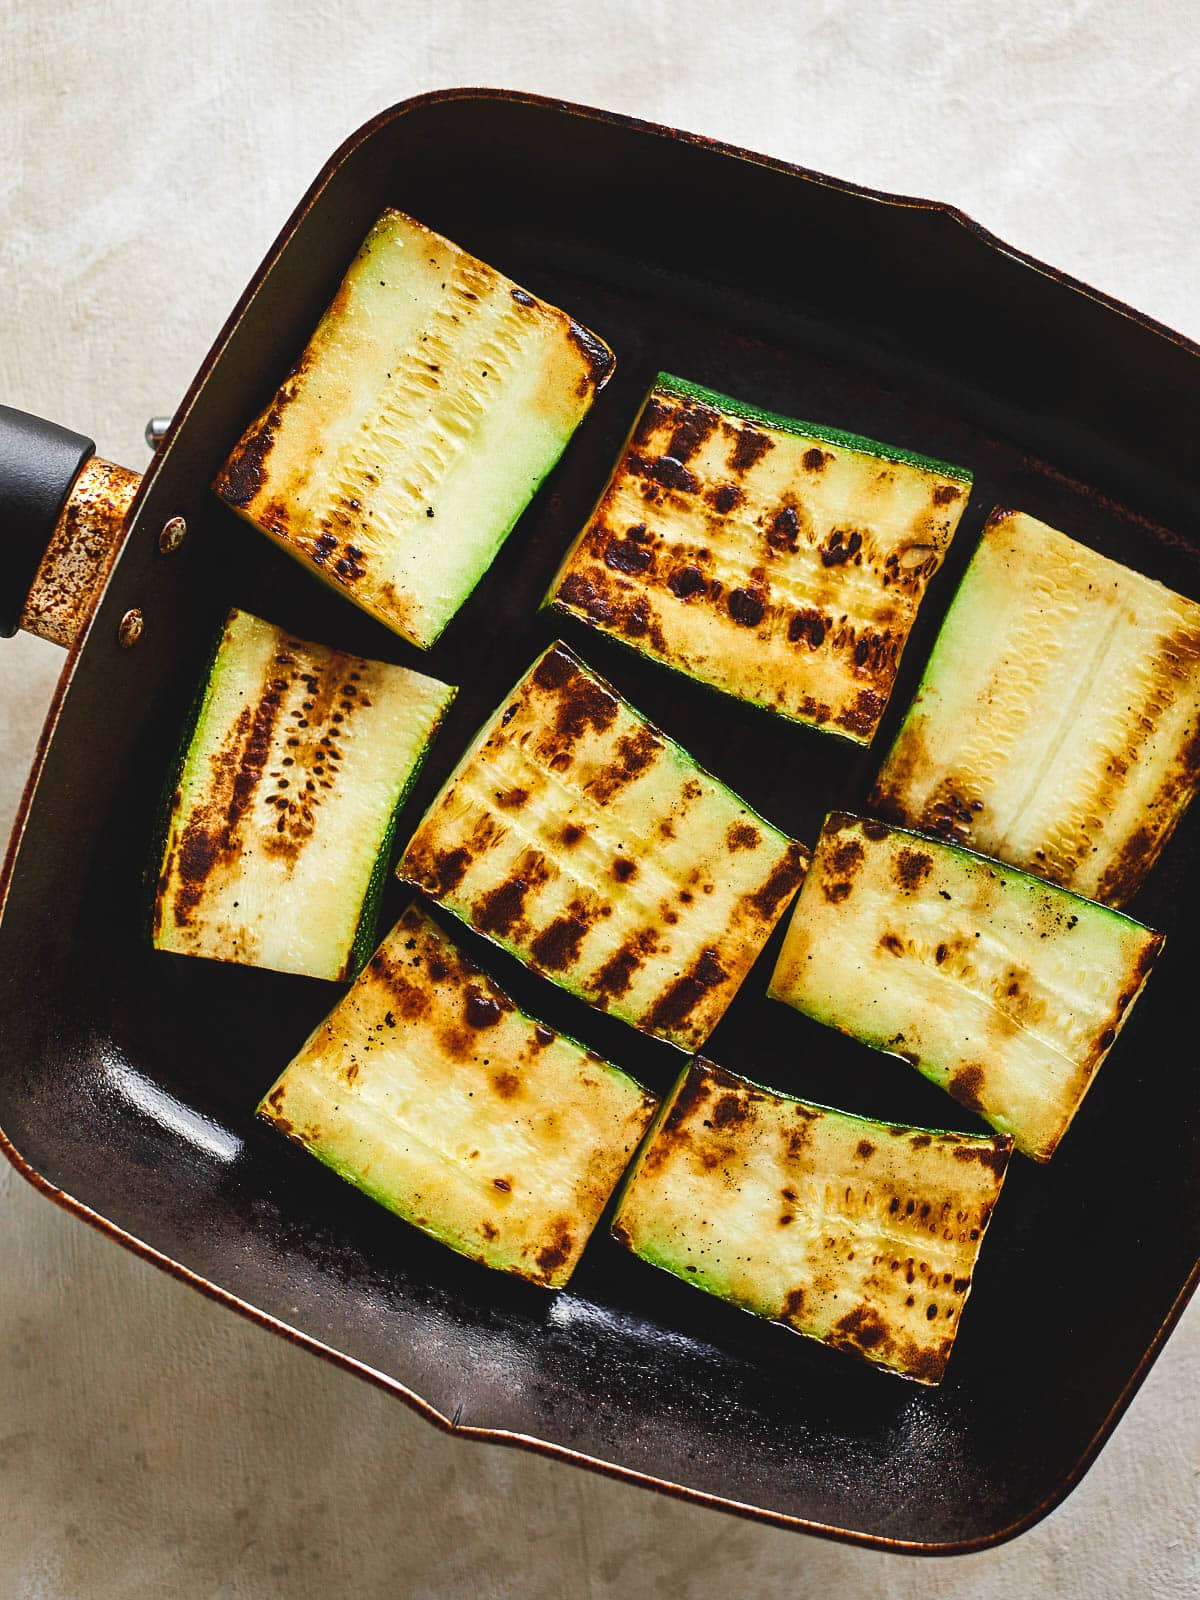 Zucchini grilling in a pan